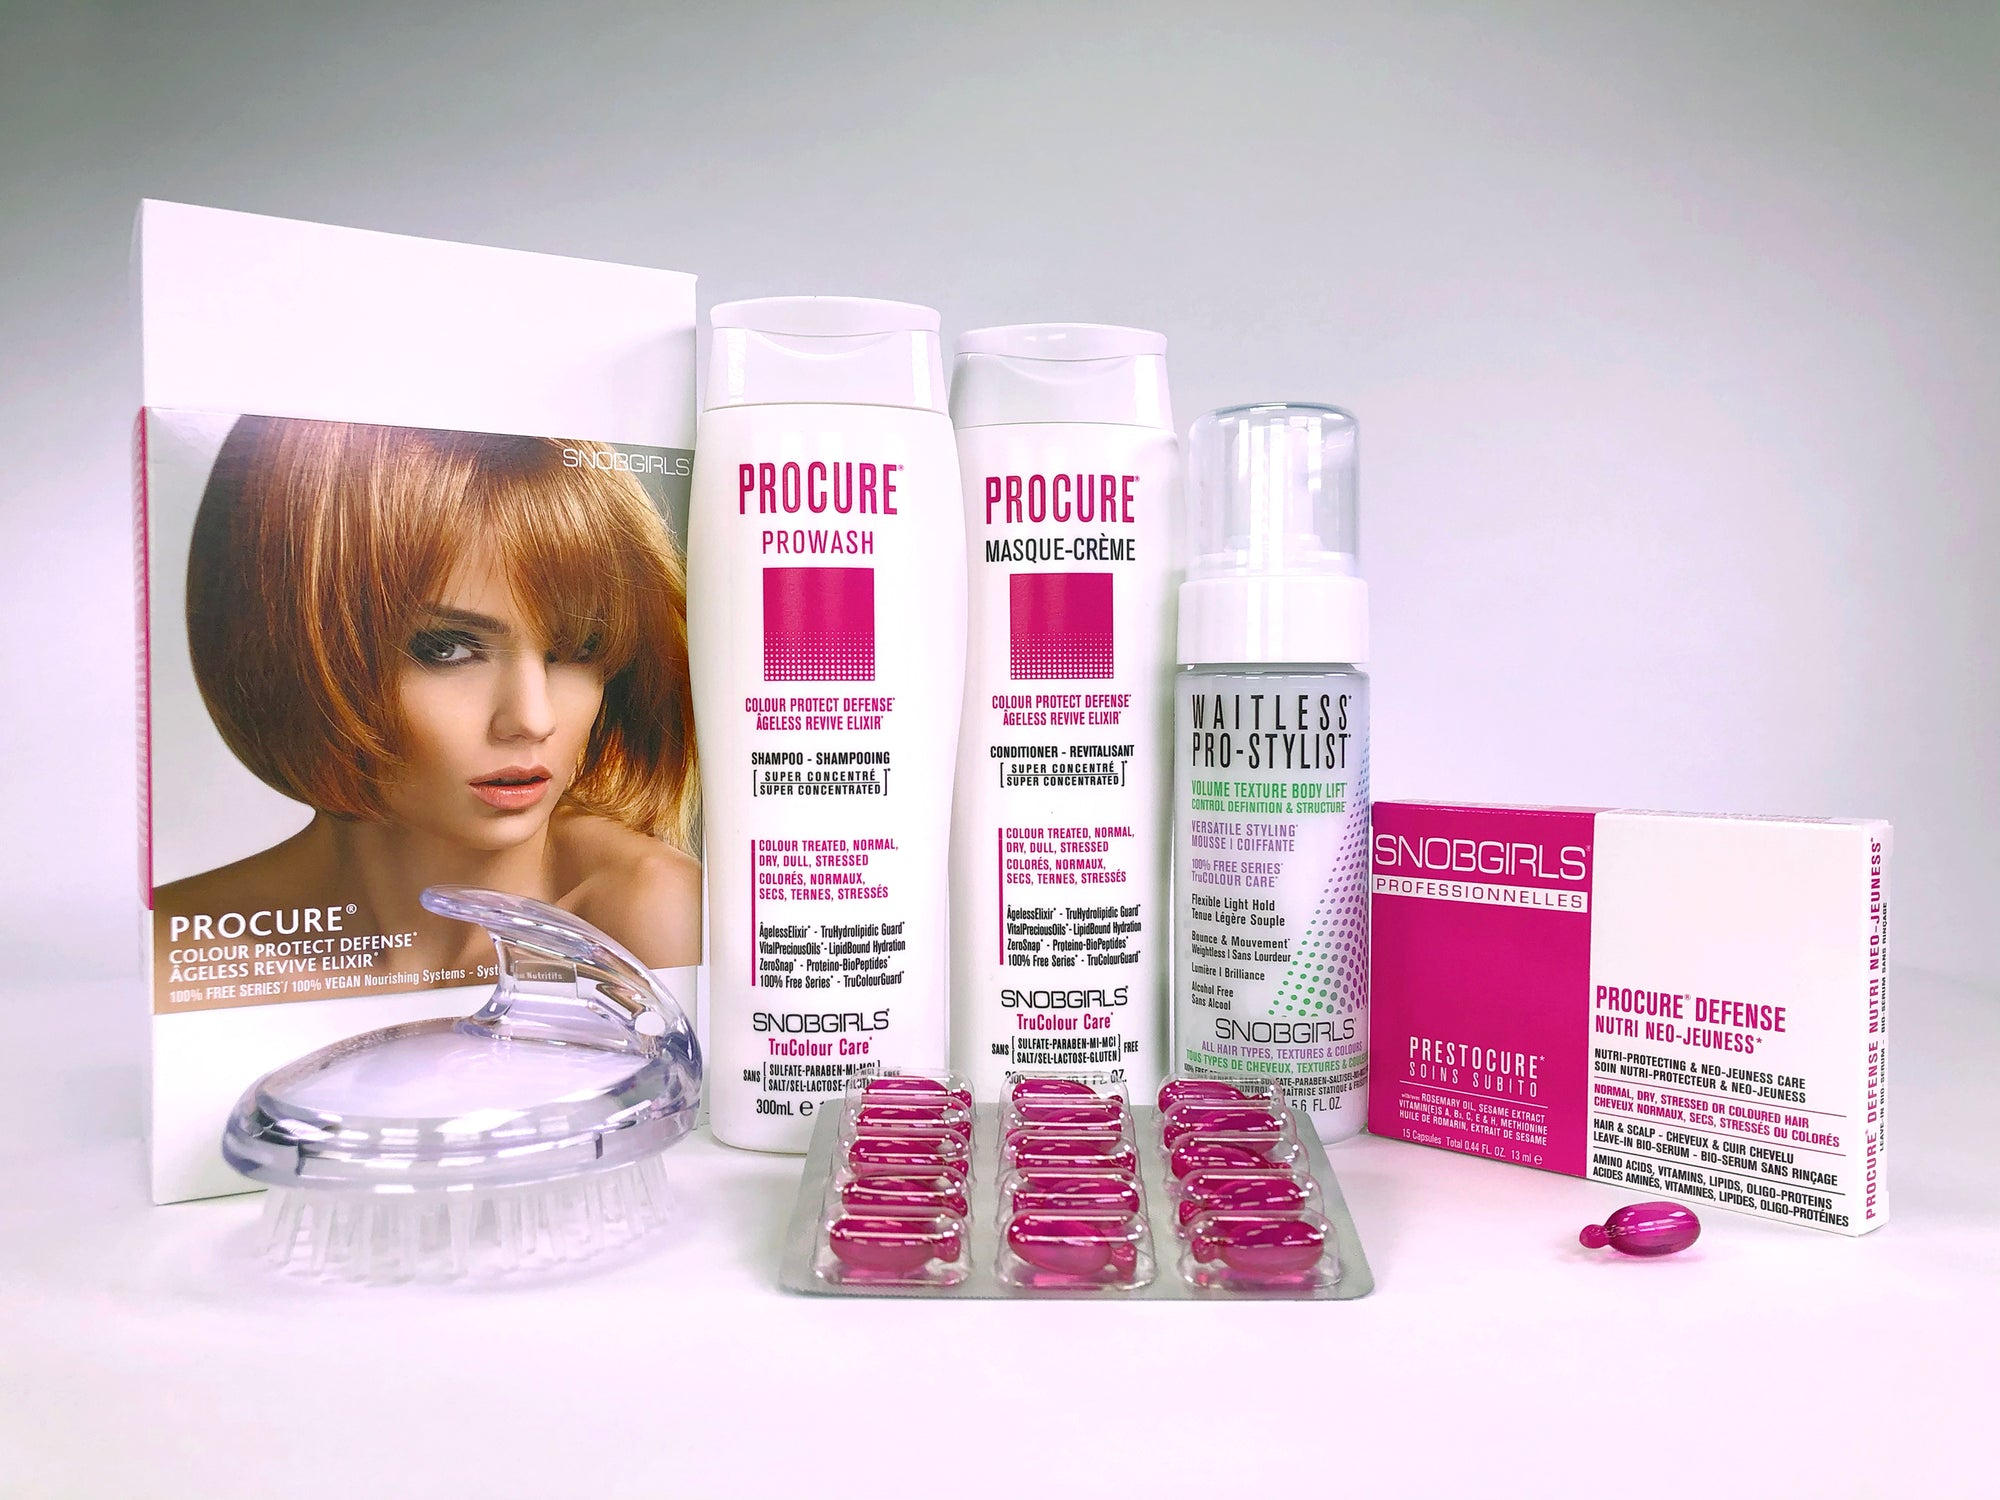 PROCURE BOX COLOUR PROTECT DEFENSE Bundle - SNOBGIRLS.com